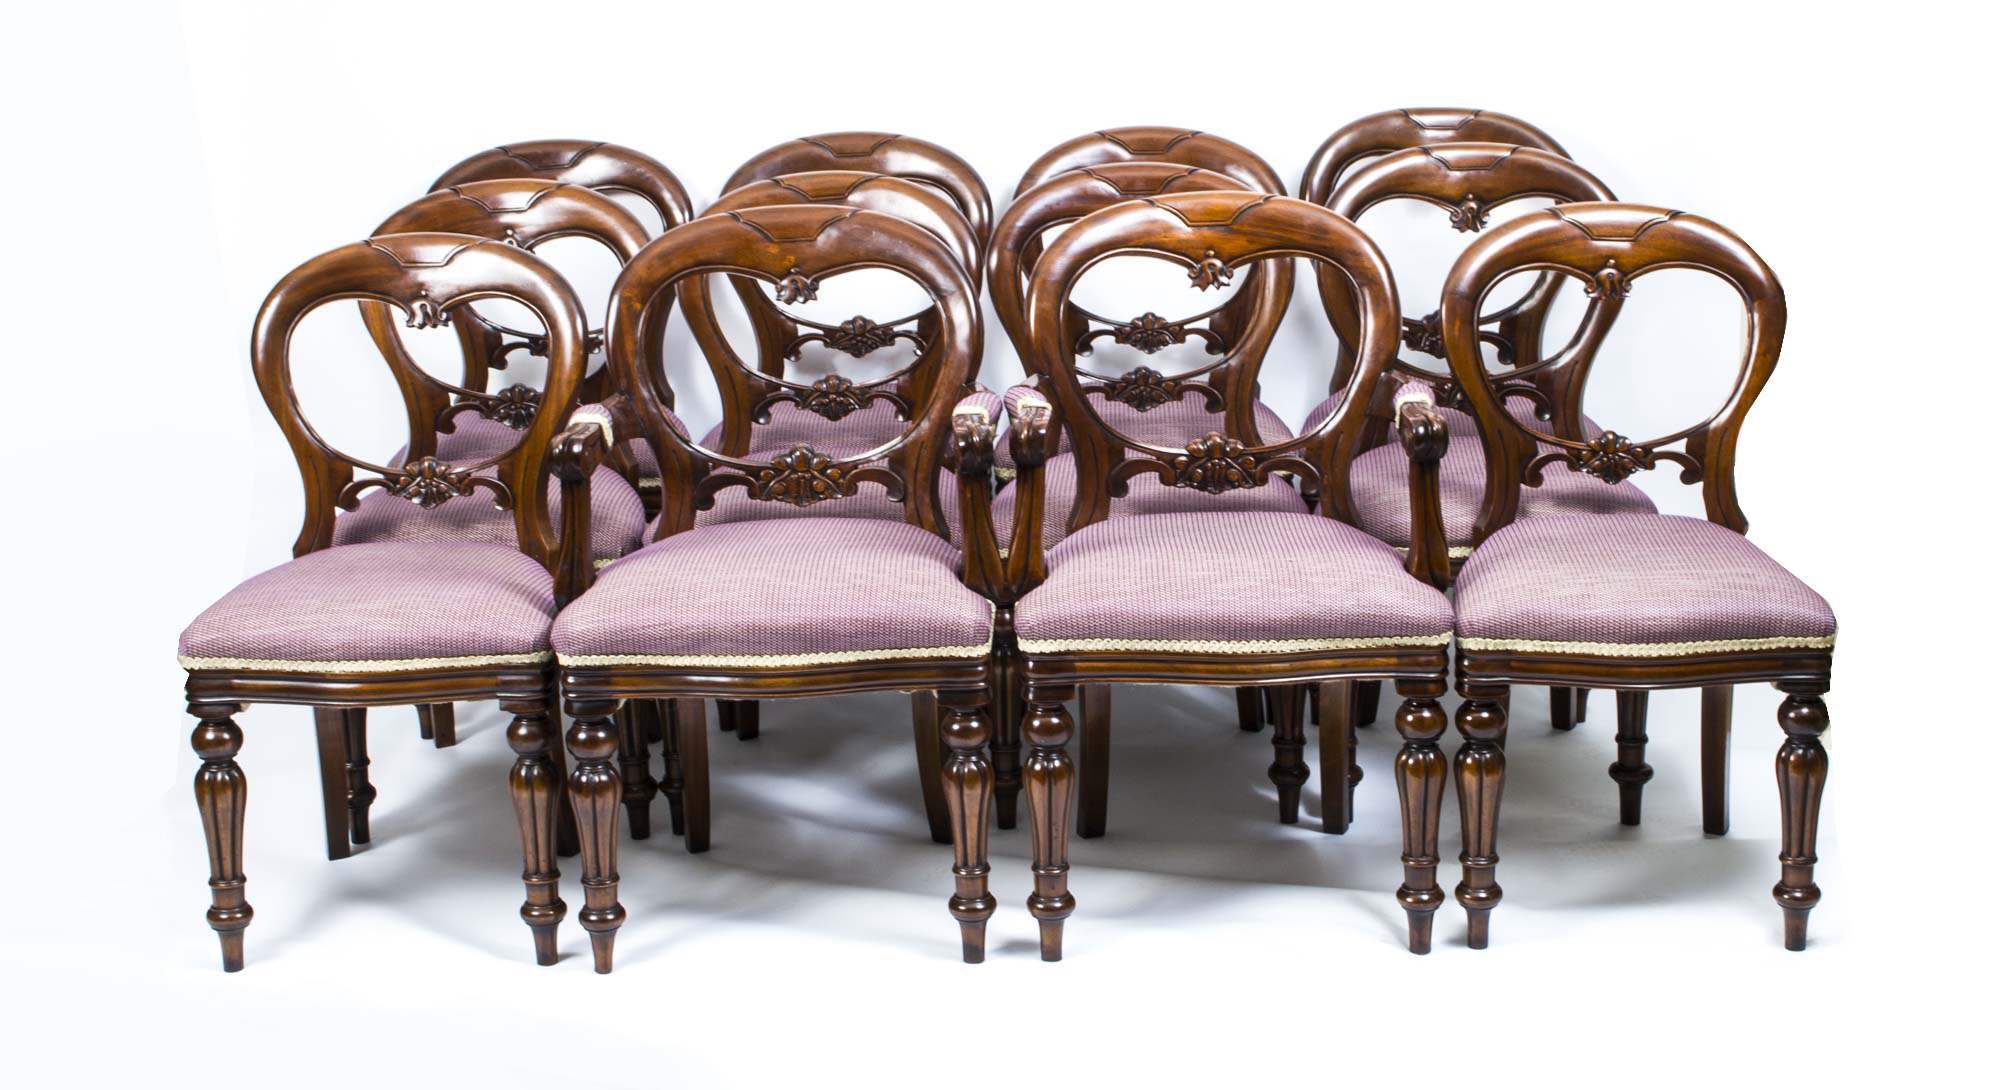 Victorian style furniture chair - Victorian Style Furniture Chair 11